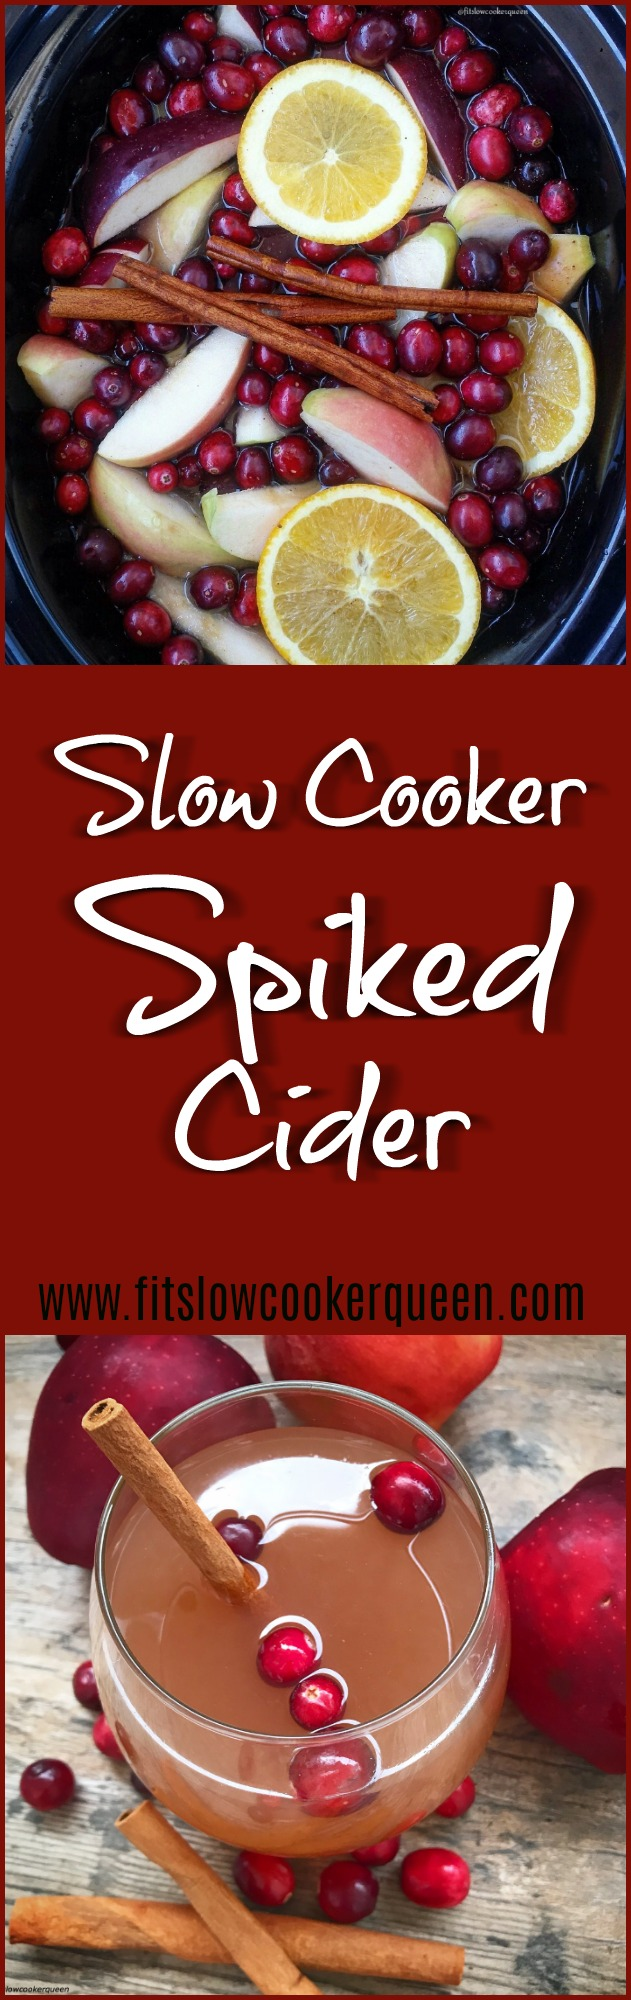 Holiday season means entertaining. This slow cooker spiked cider recipeusing all-natural fruit will have your house smelling amazing while adding a nice 'spike' to your punch.